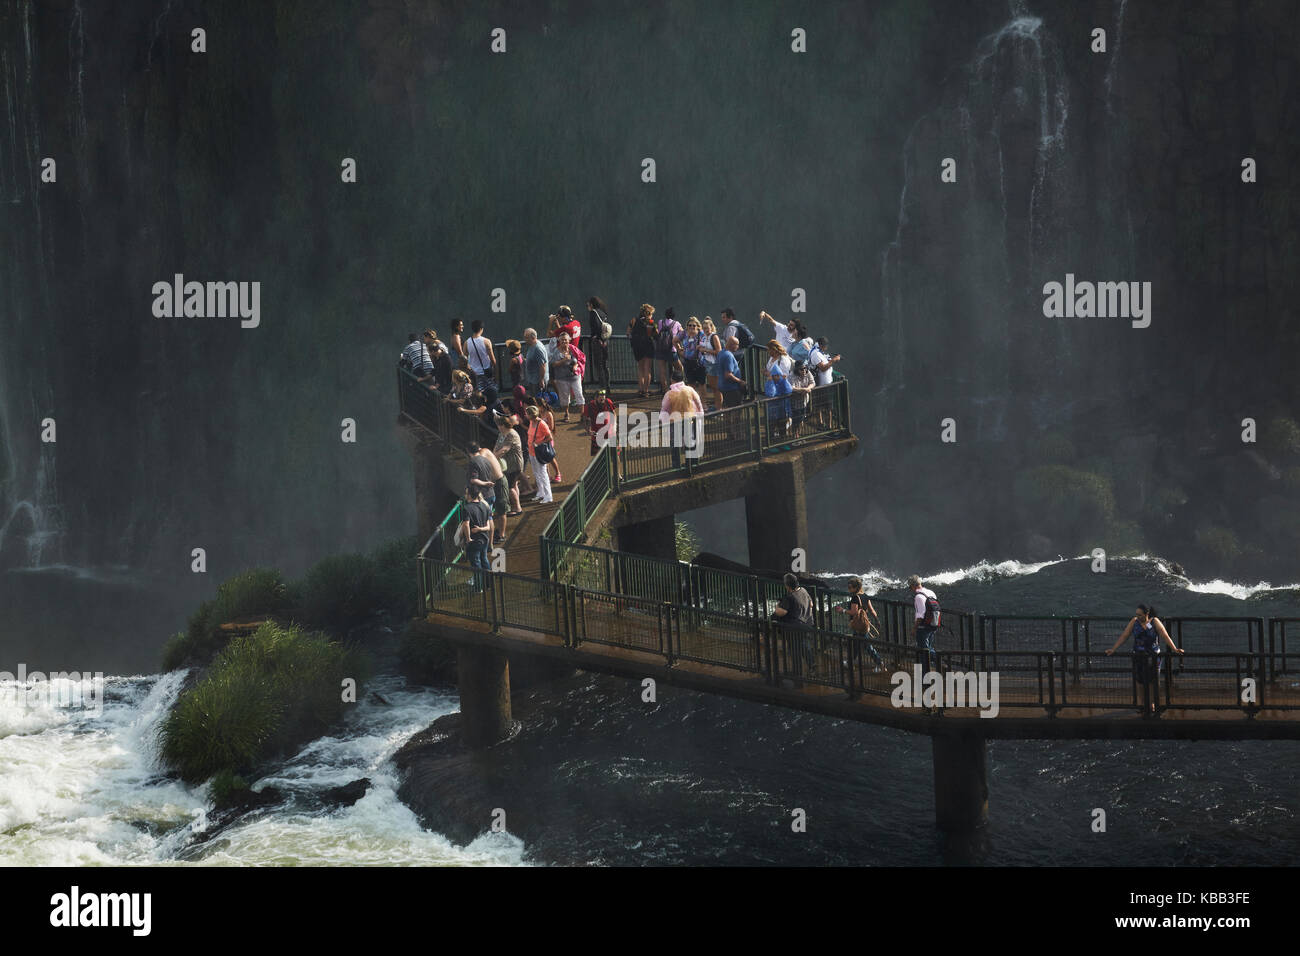 Tourists on viewing platform on Brazil side of Iguazu Falls, Brazil - Argentina border, South America - Stock Image